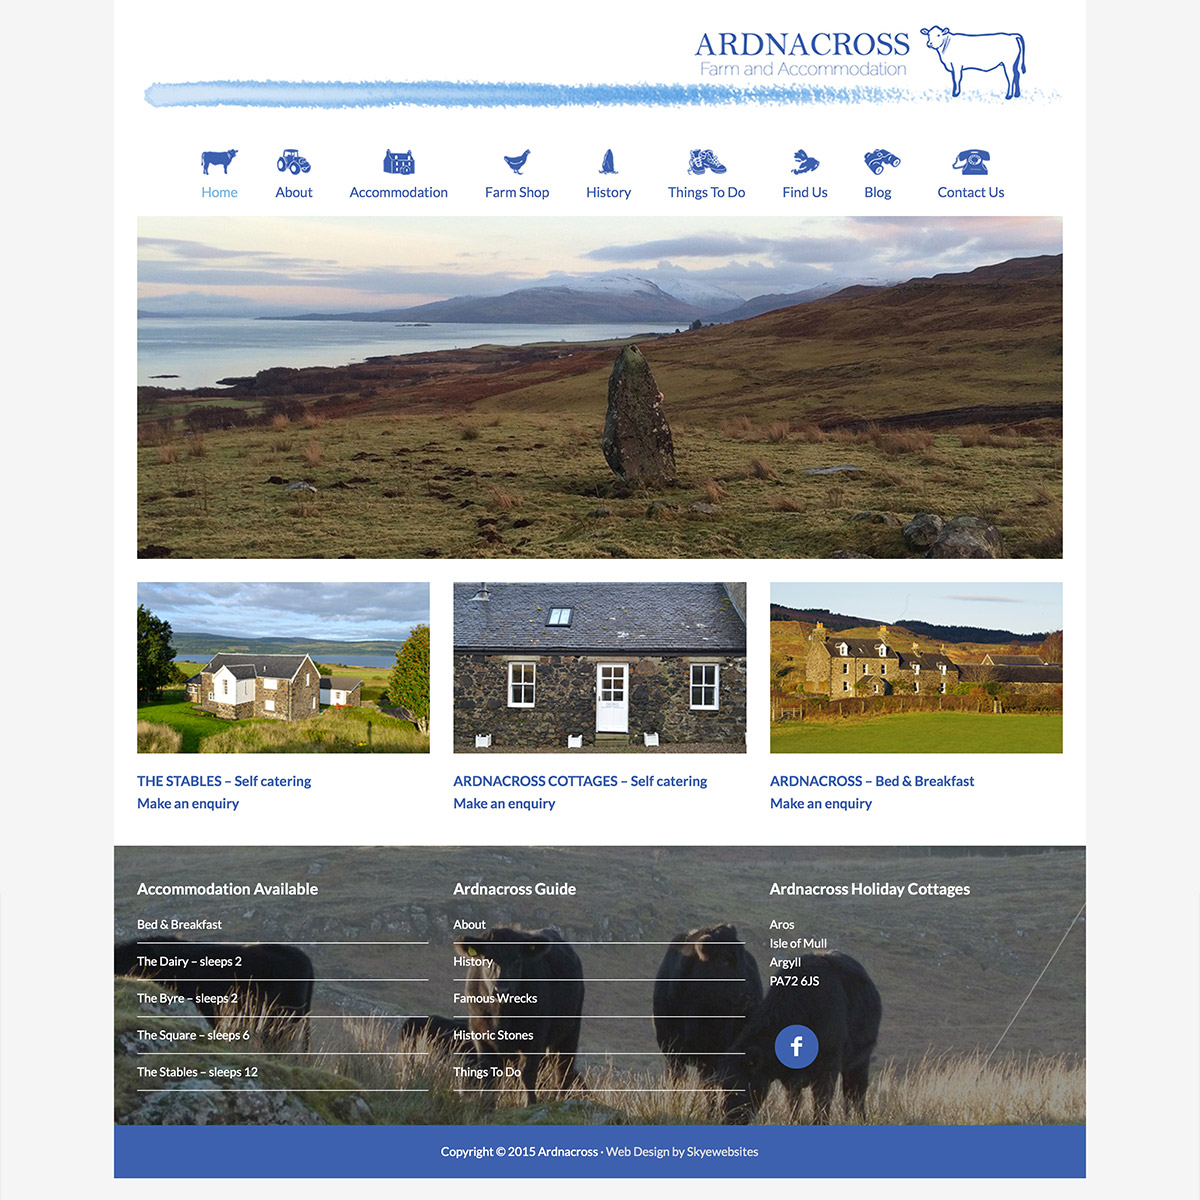 Ardnacross Farm cottages on Mull website